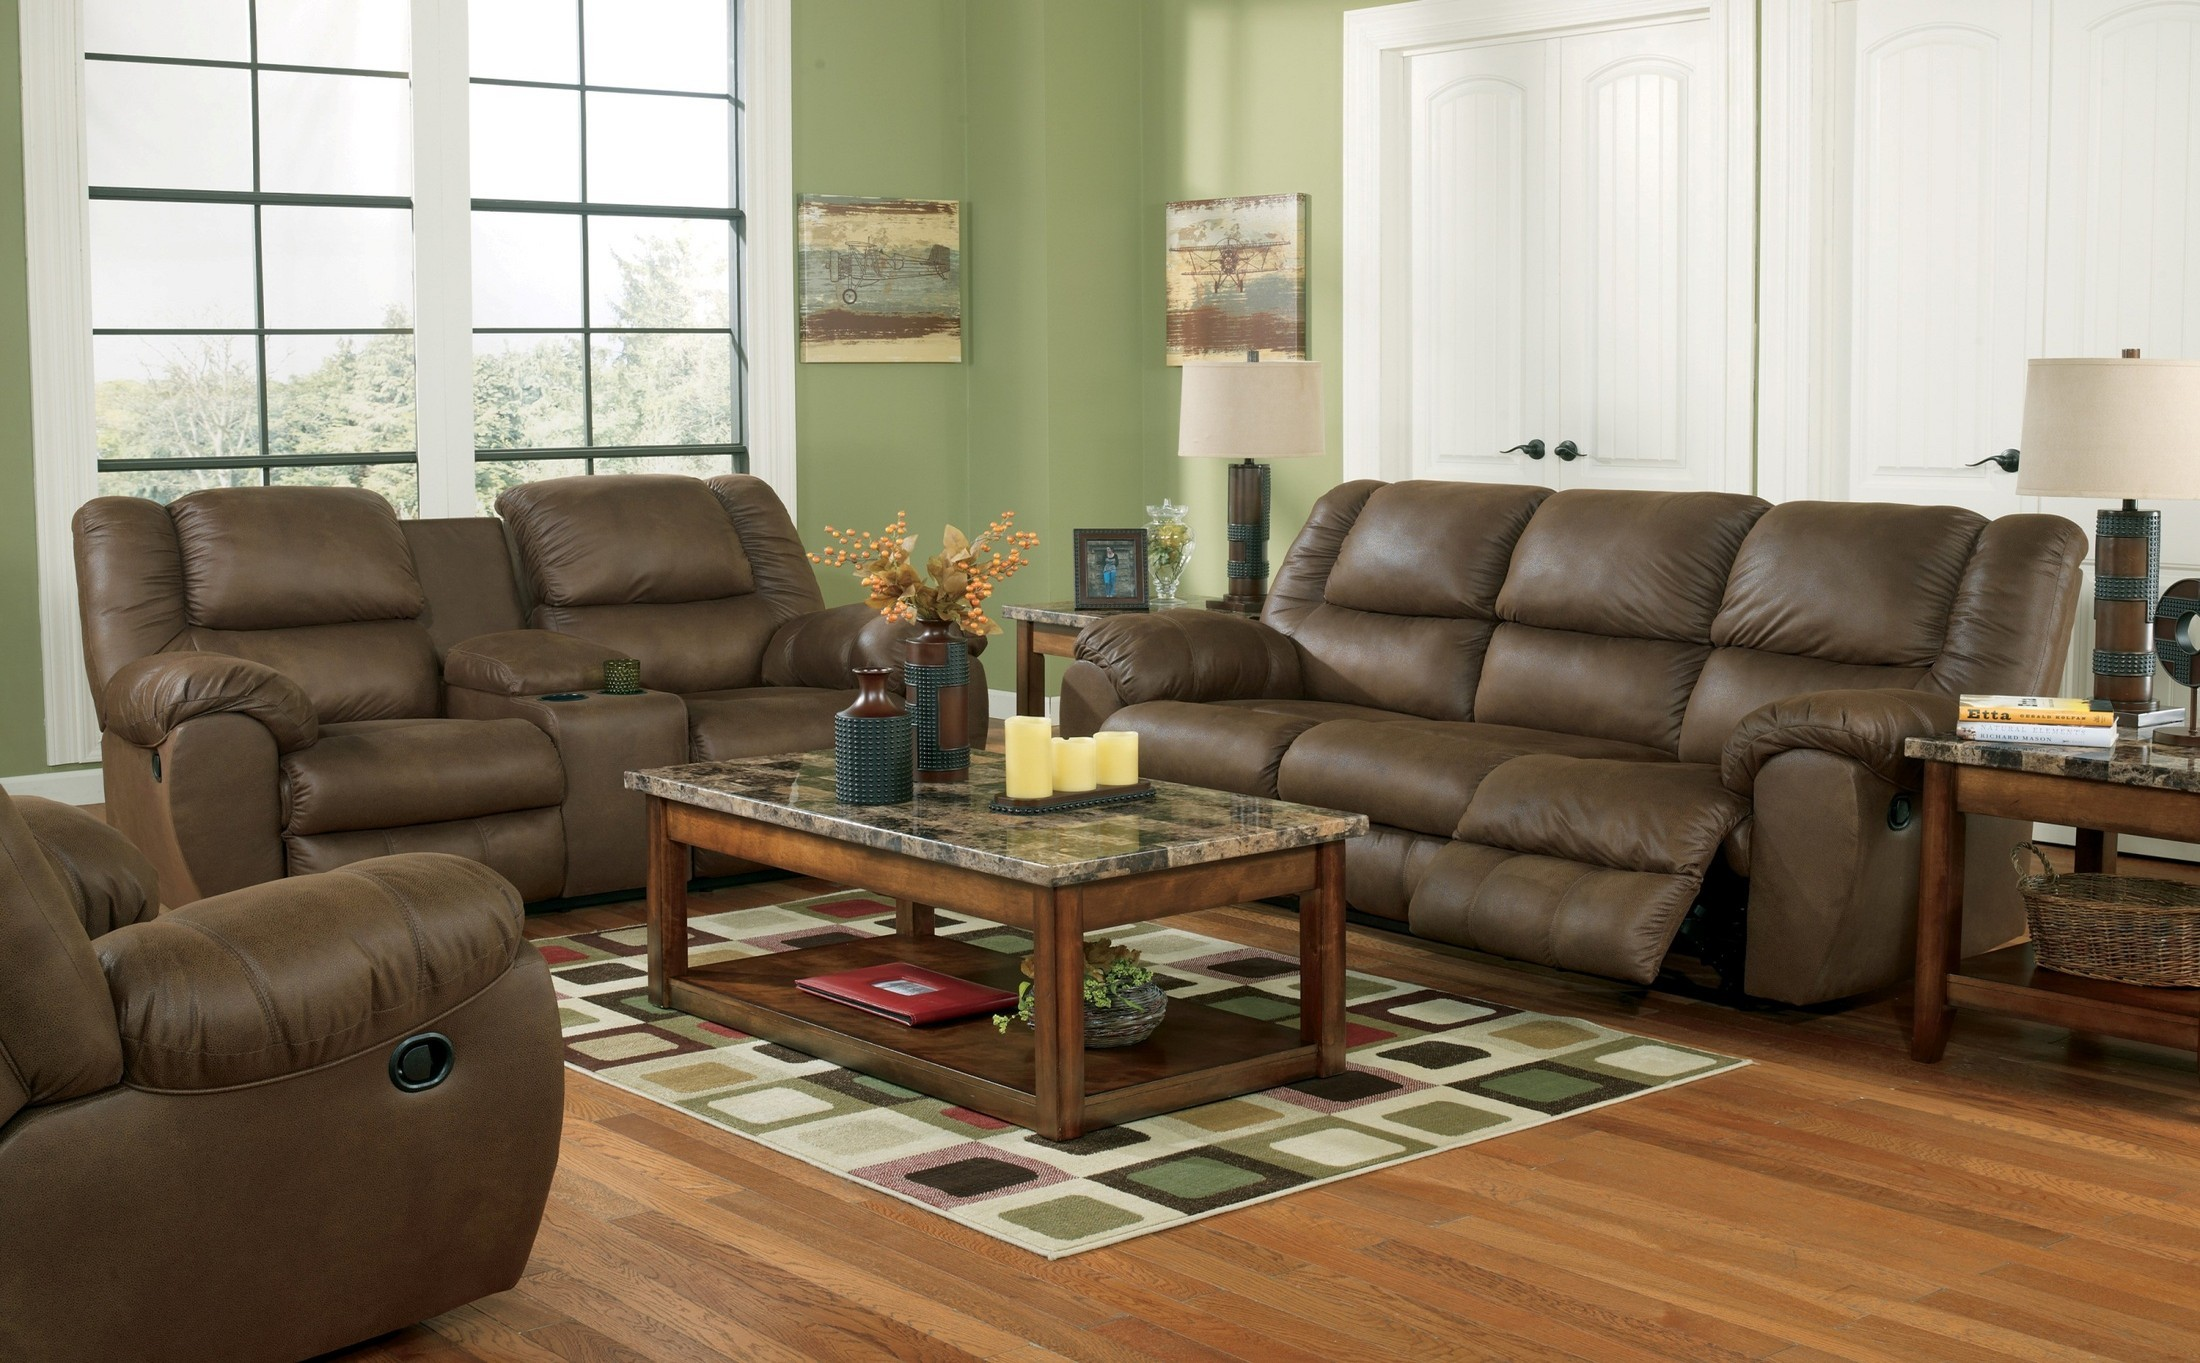 Quarterback canyon reclining living room set from ashley for Living room 94 game